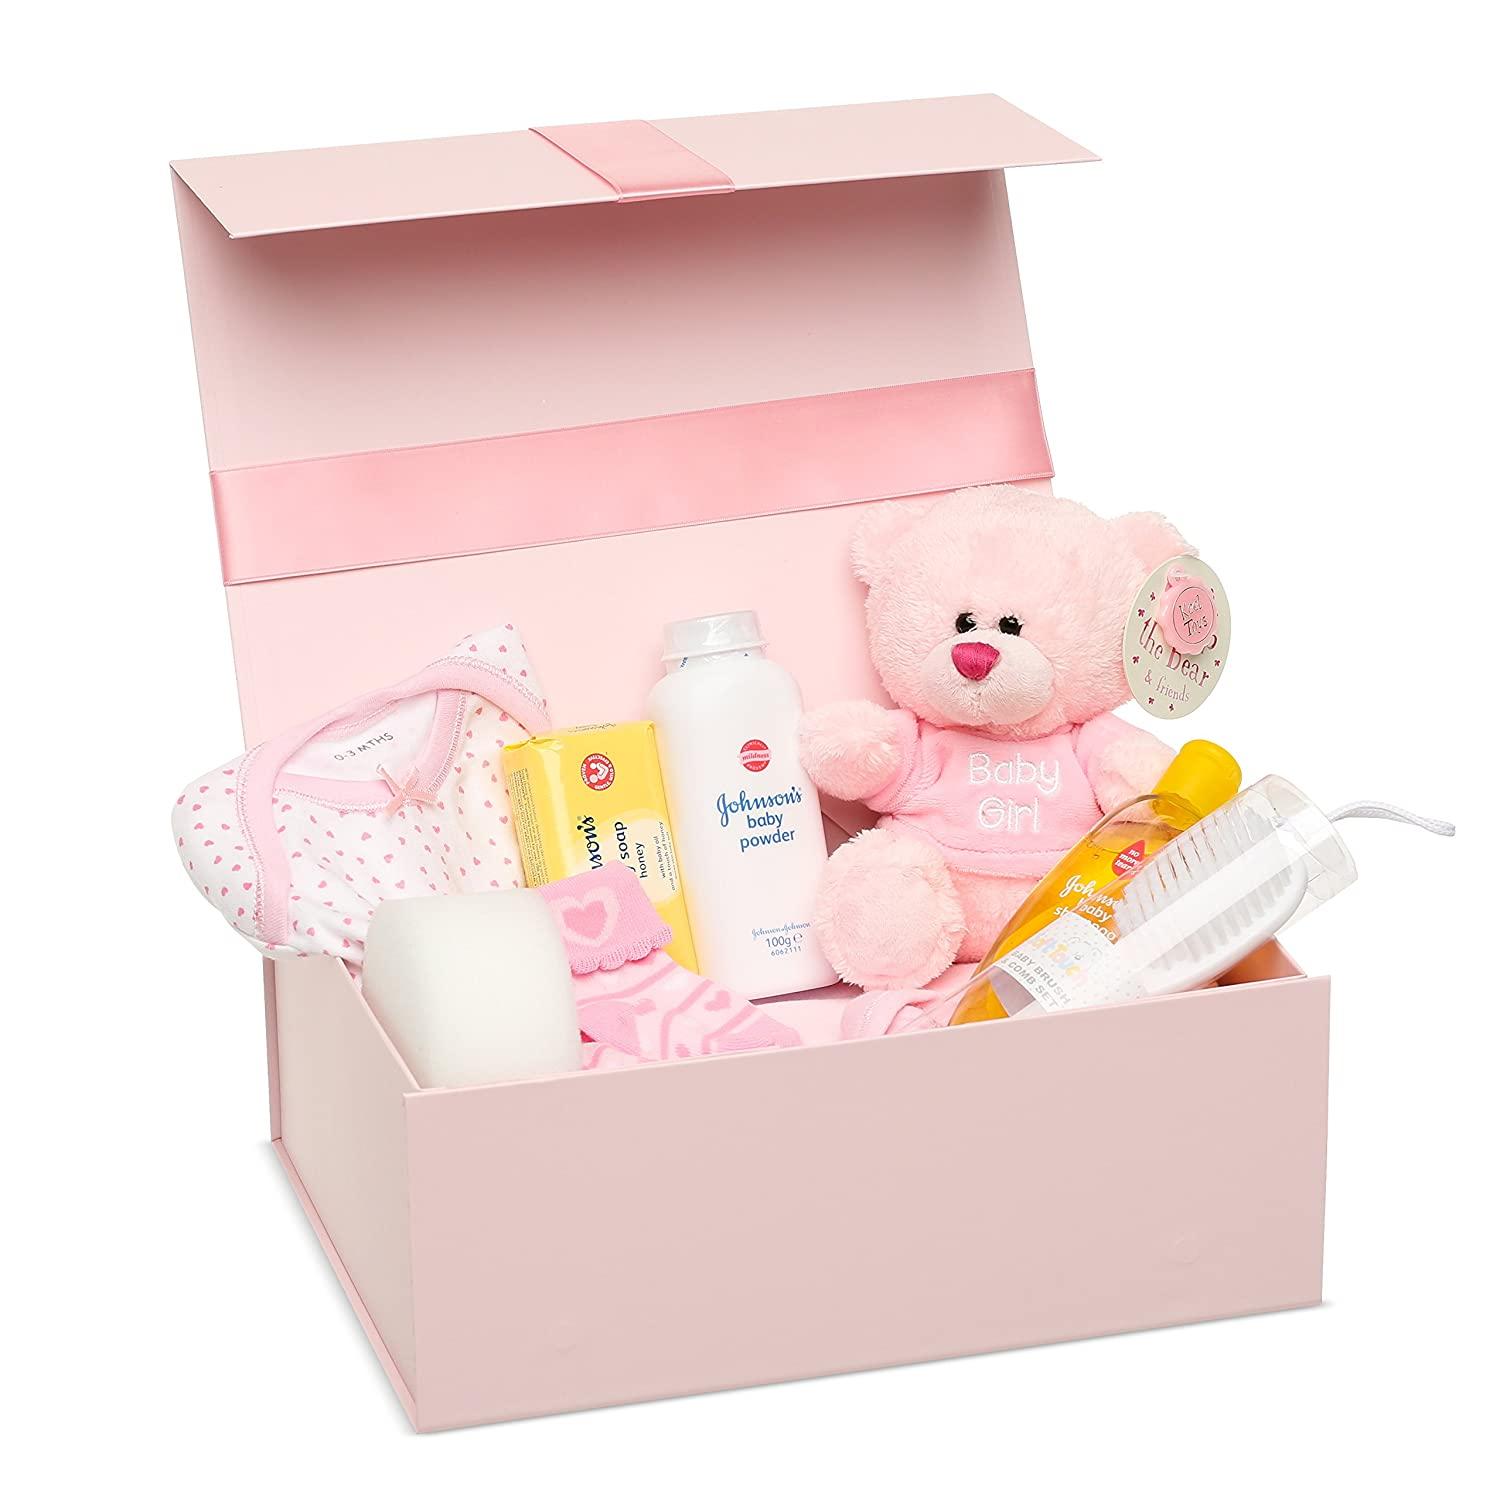 BABY BOX SHOP - Blue Keepsake Box Full of Gifts, Ideal Present for a Baby Shower